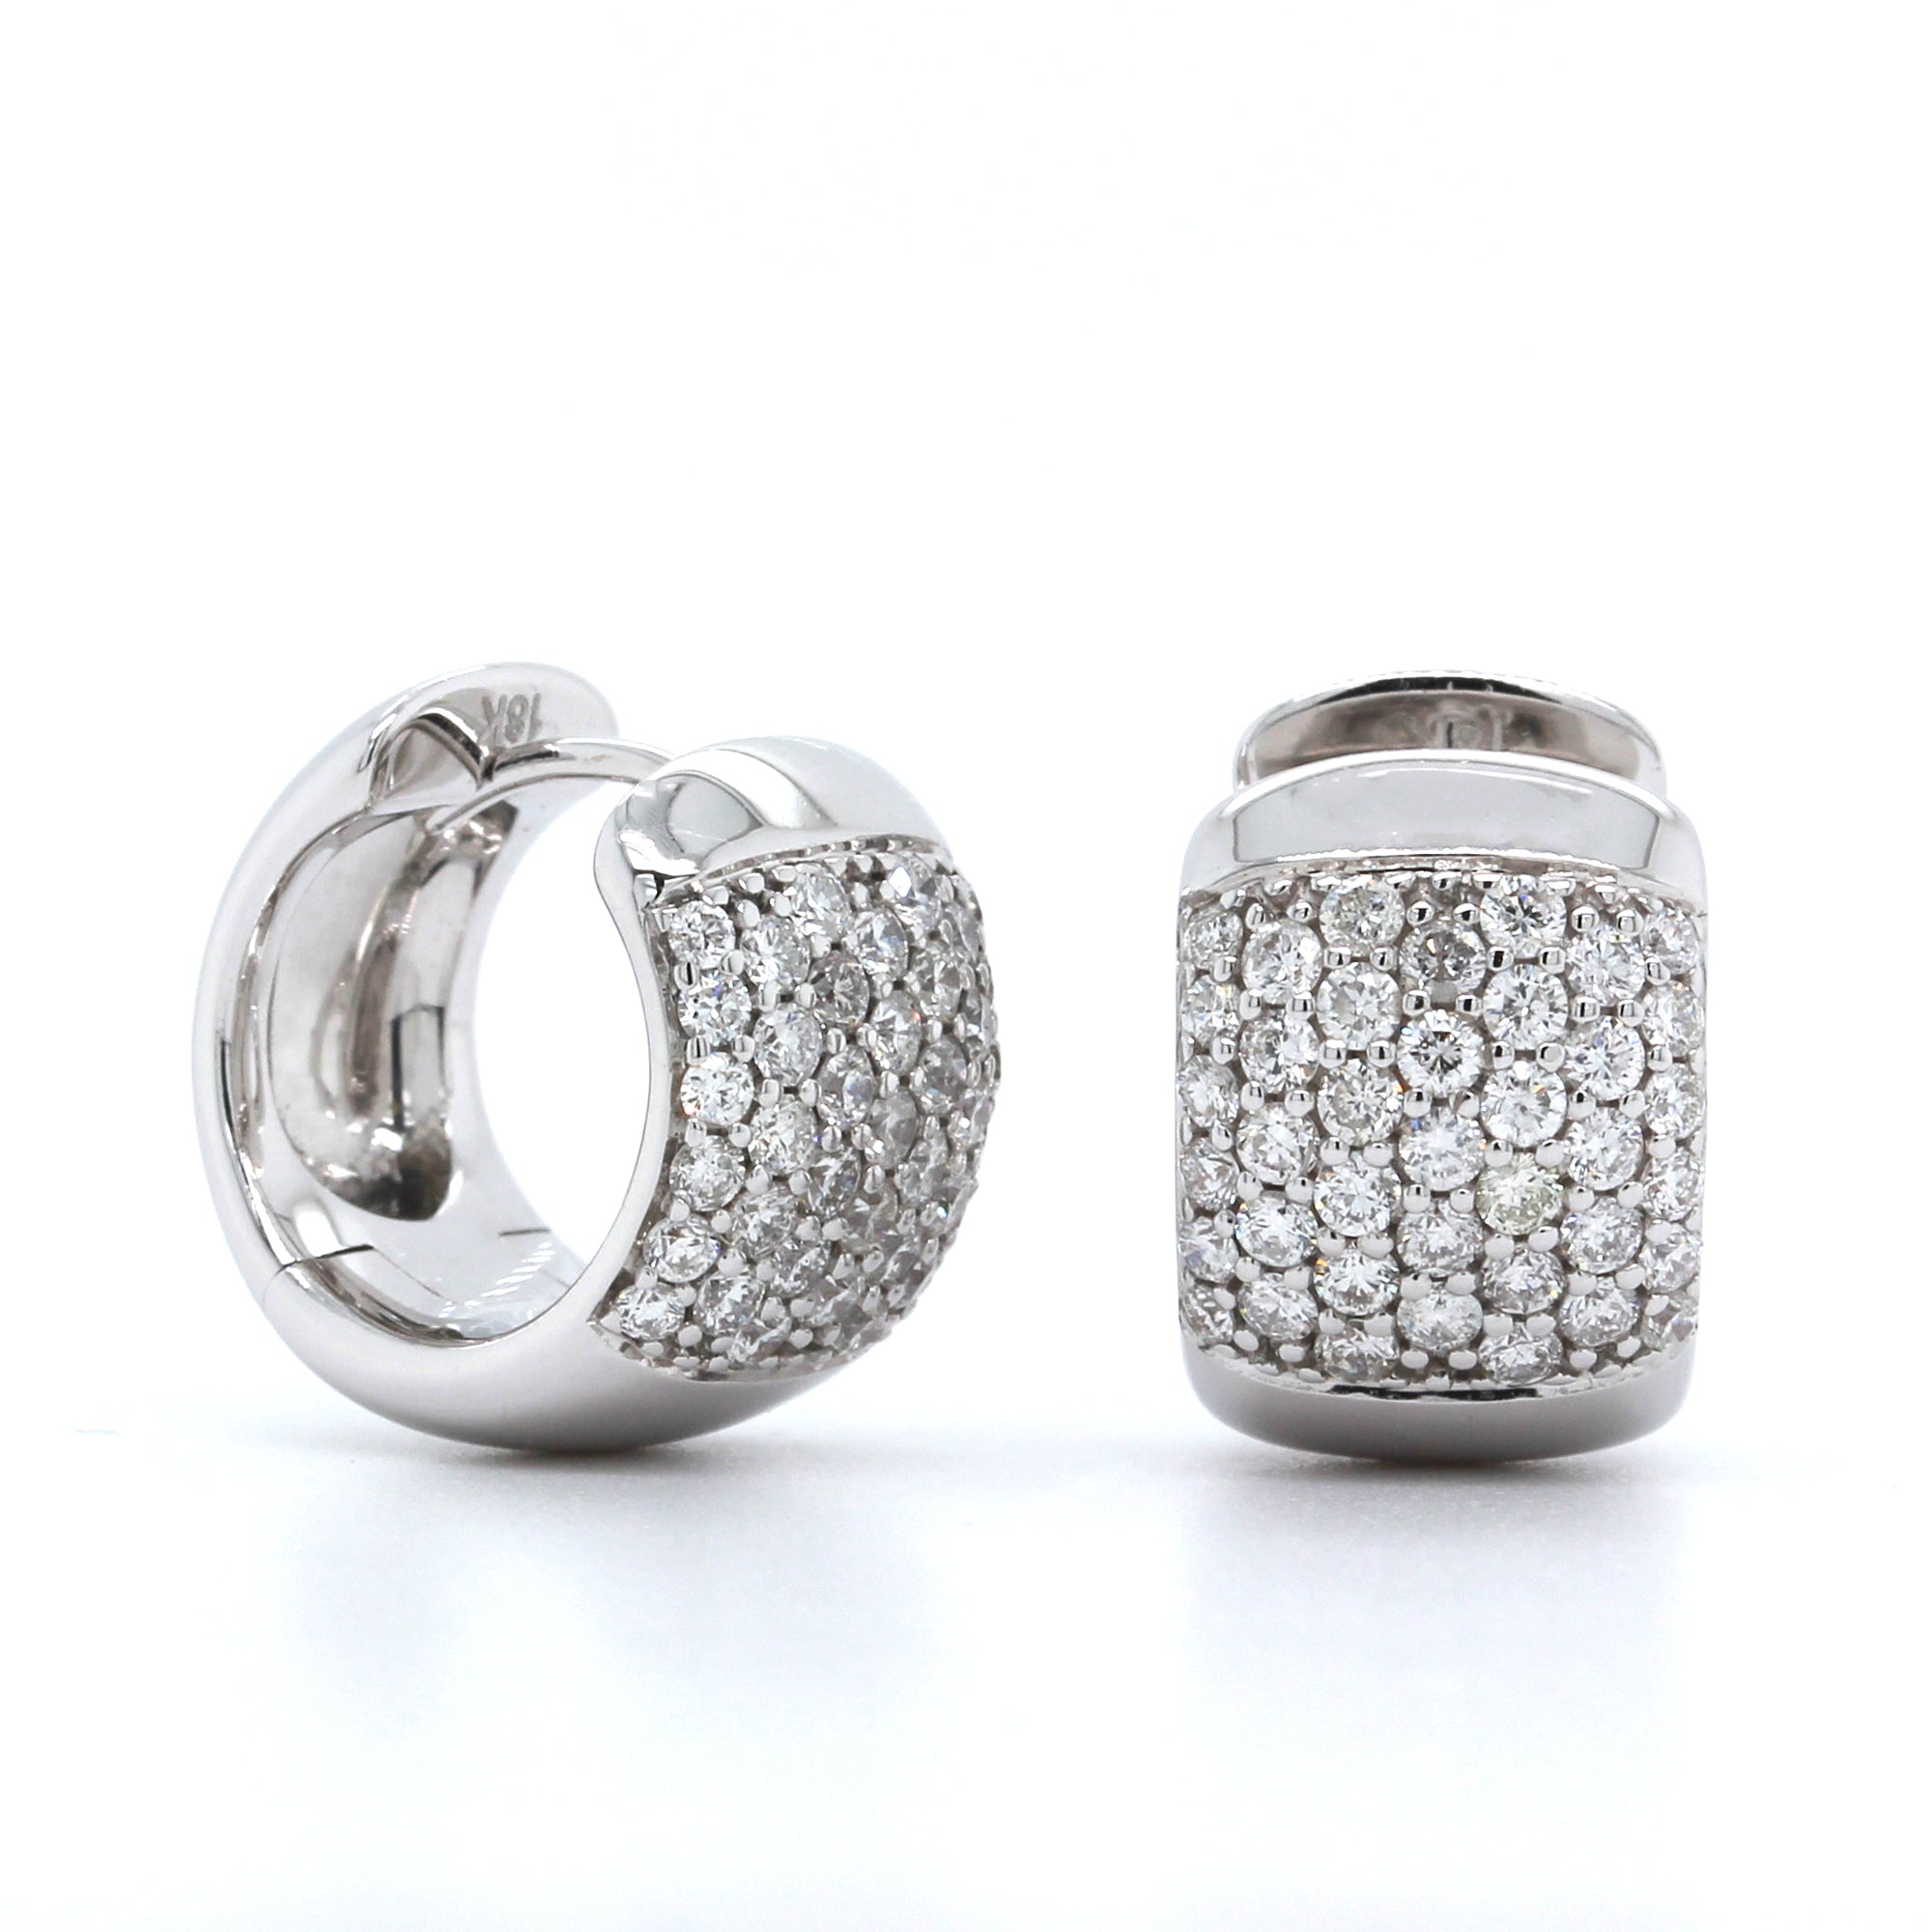 18K White Gold Pave Wide Huggie Earrings